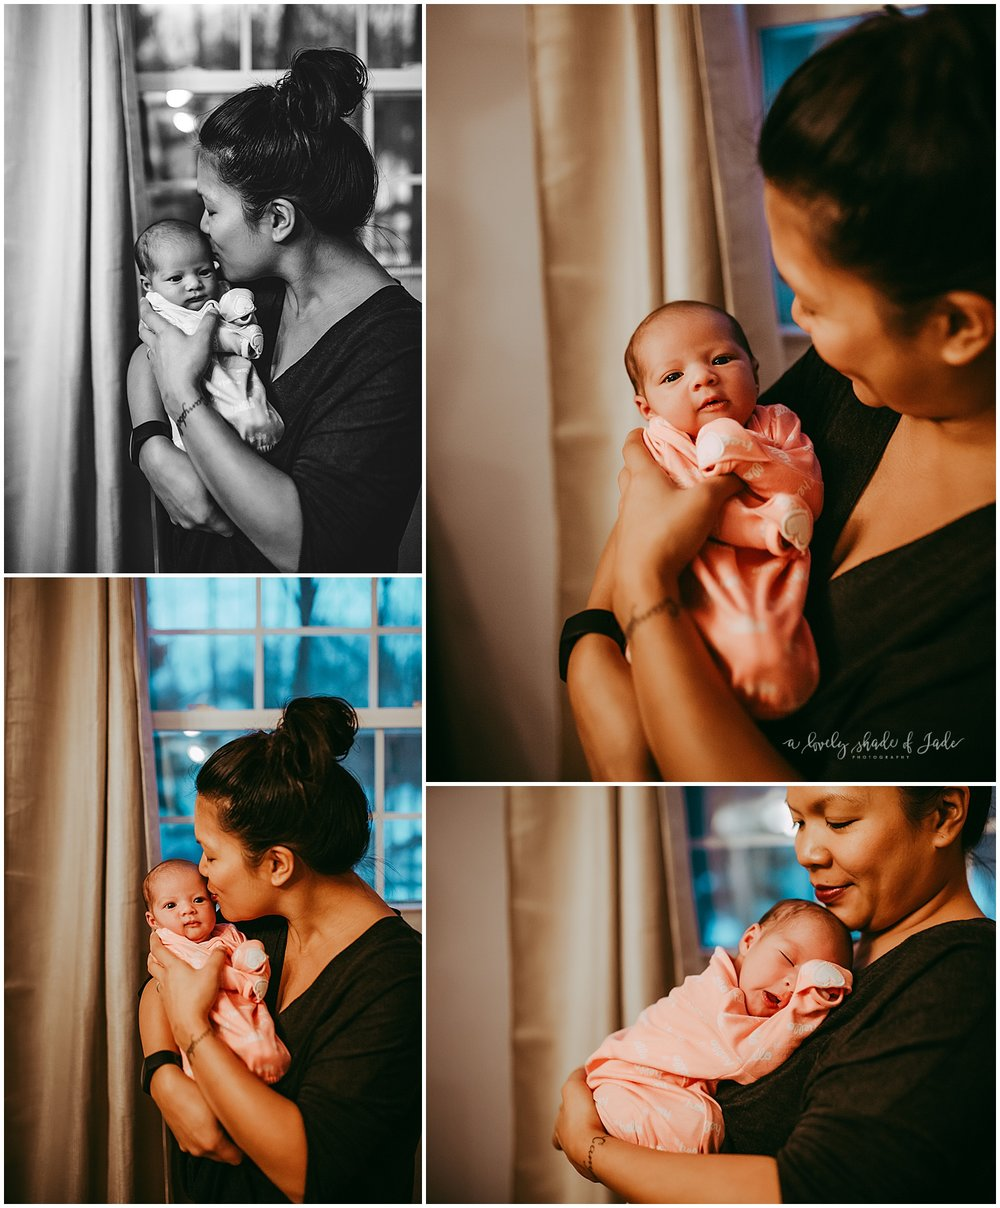 Kensington_Lifestyle_Newborn_NJ_Photographer_0008.jpg